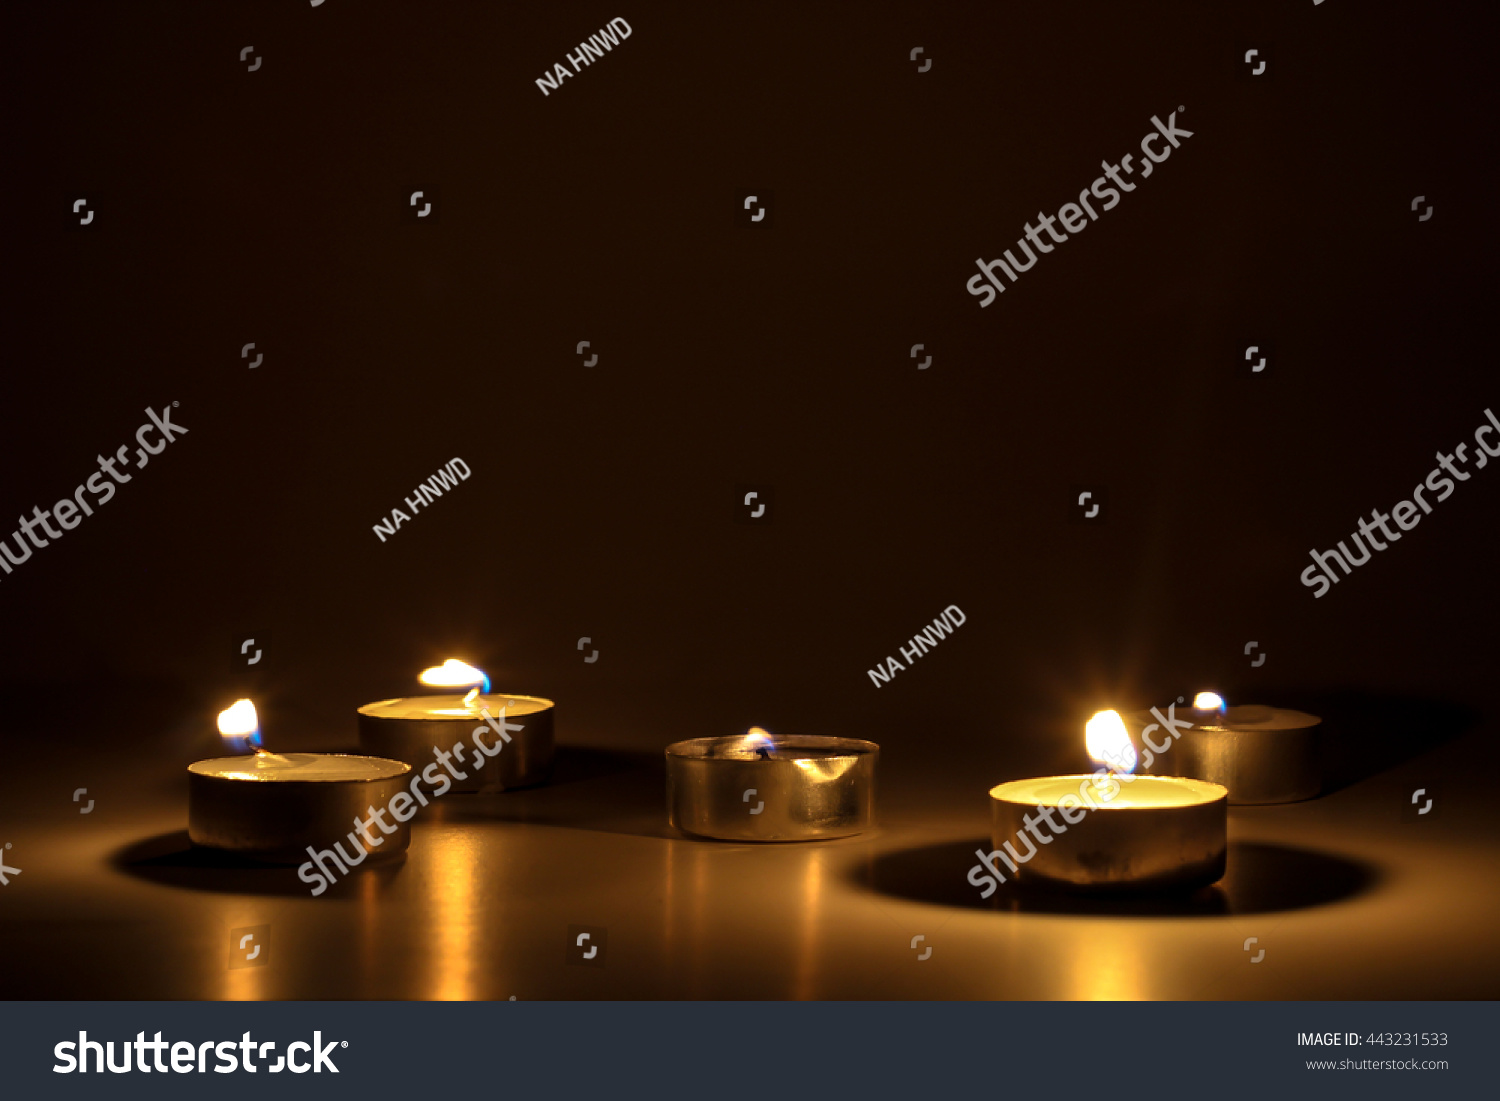 Candle light background Candle flame at night